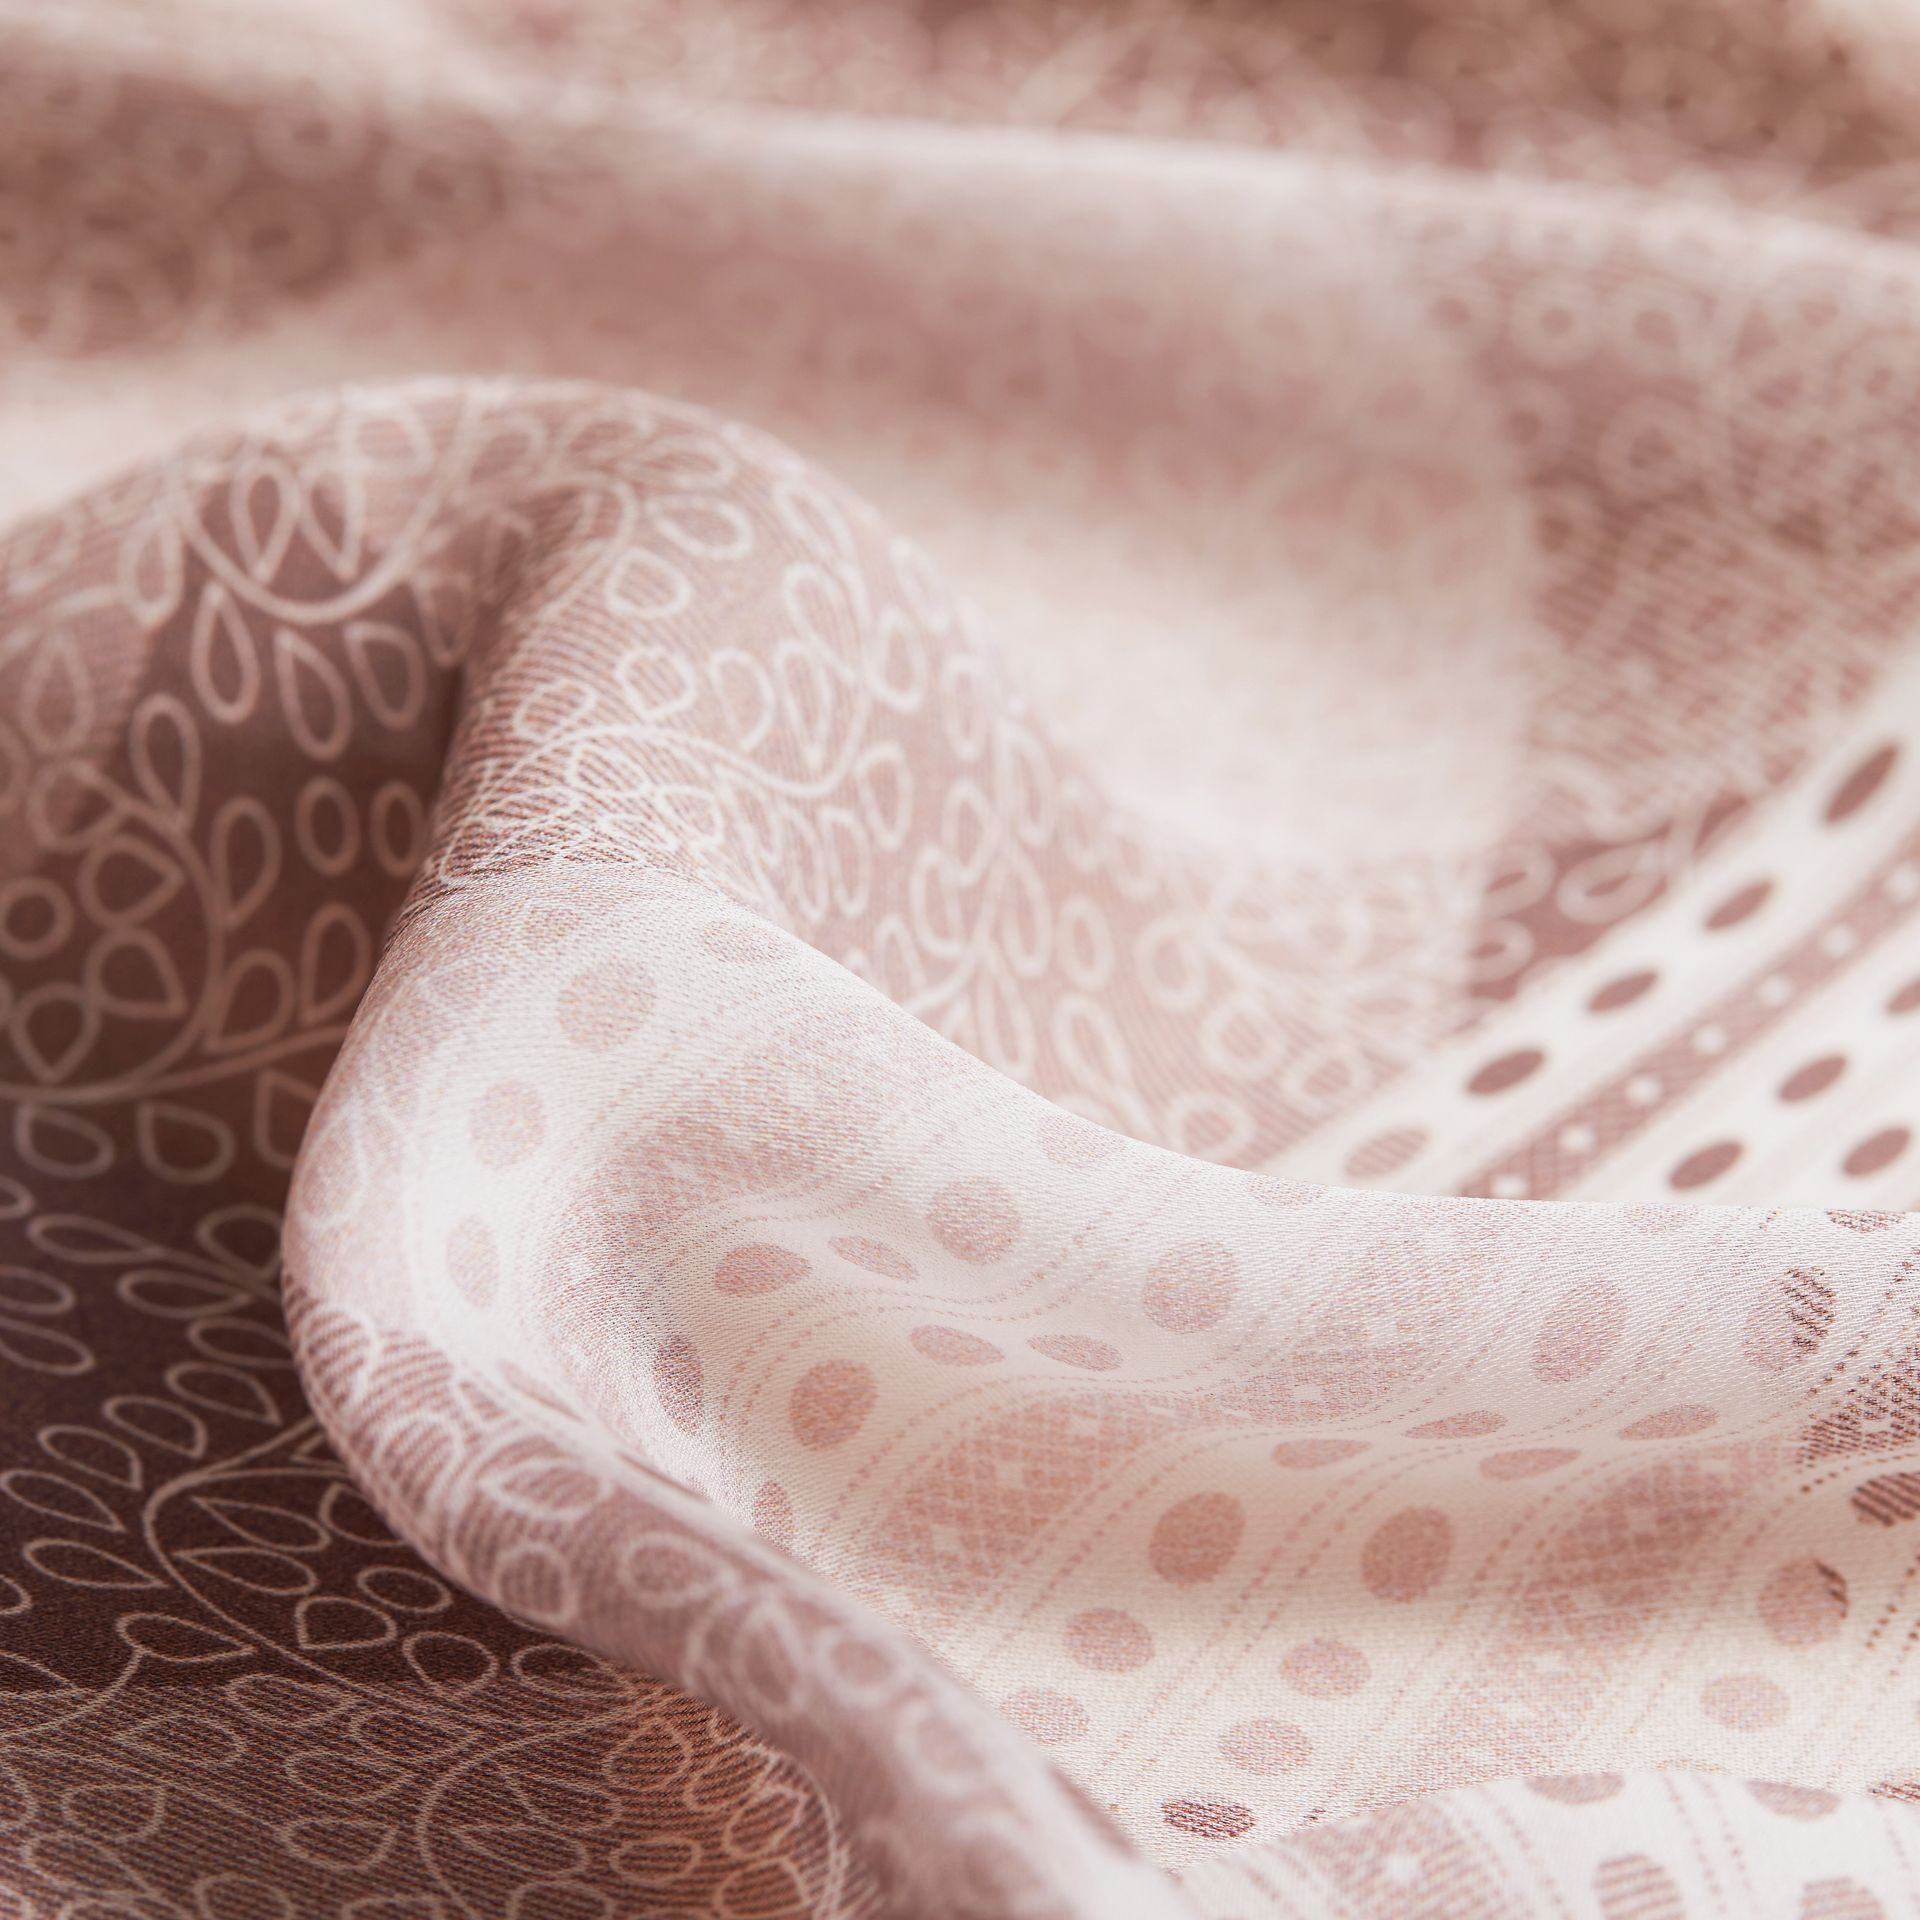 Floral Lace and Check Print Silk Scarf in Ash Rose - Women | Burberry Singapore - gallery image 2